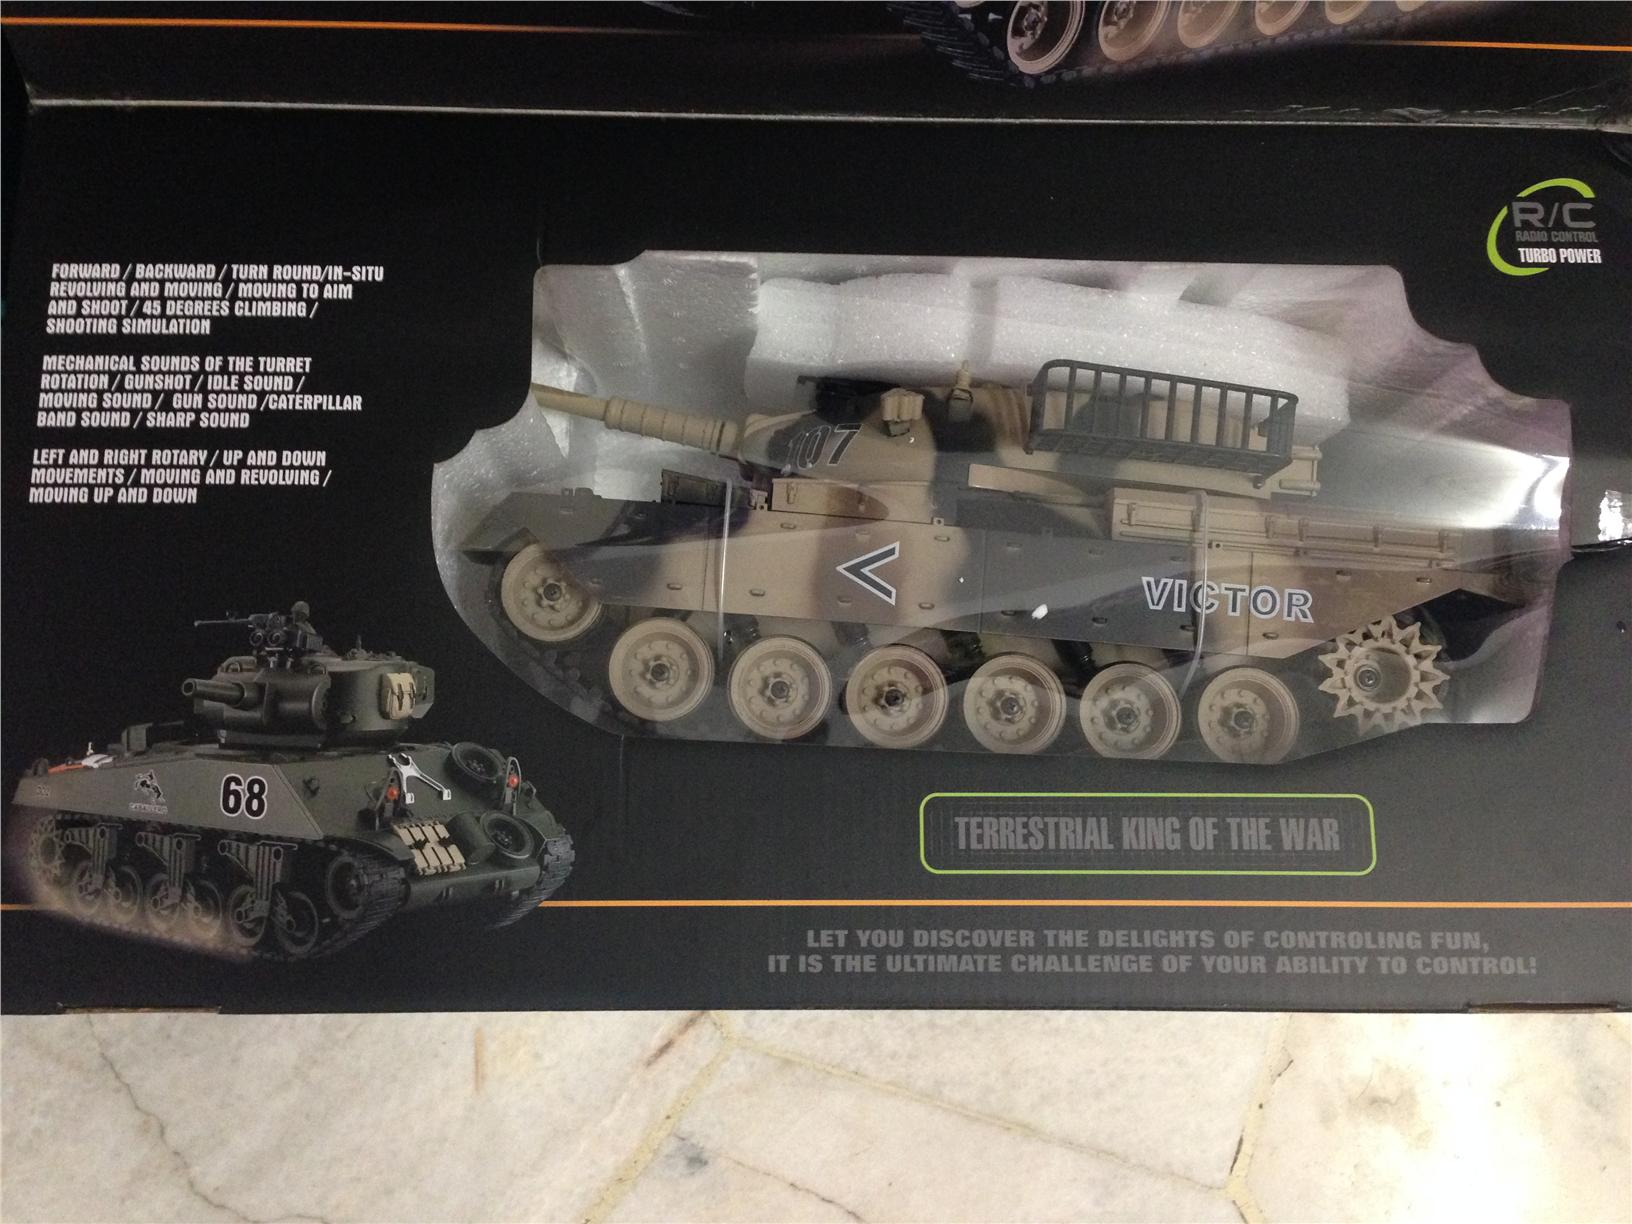 rc boots with 1 16 Airsoft Bb Rc Tank Usa M60 Louis230972 176353016 2018 04 Sale P on 200977075415 in addition B0084YPVDK further 463378249132196958 as well RB6 additionally 6030217910028.